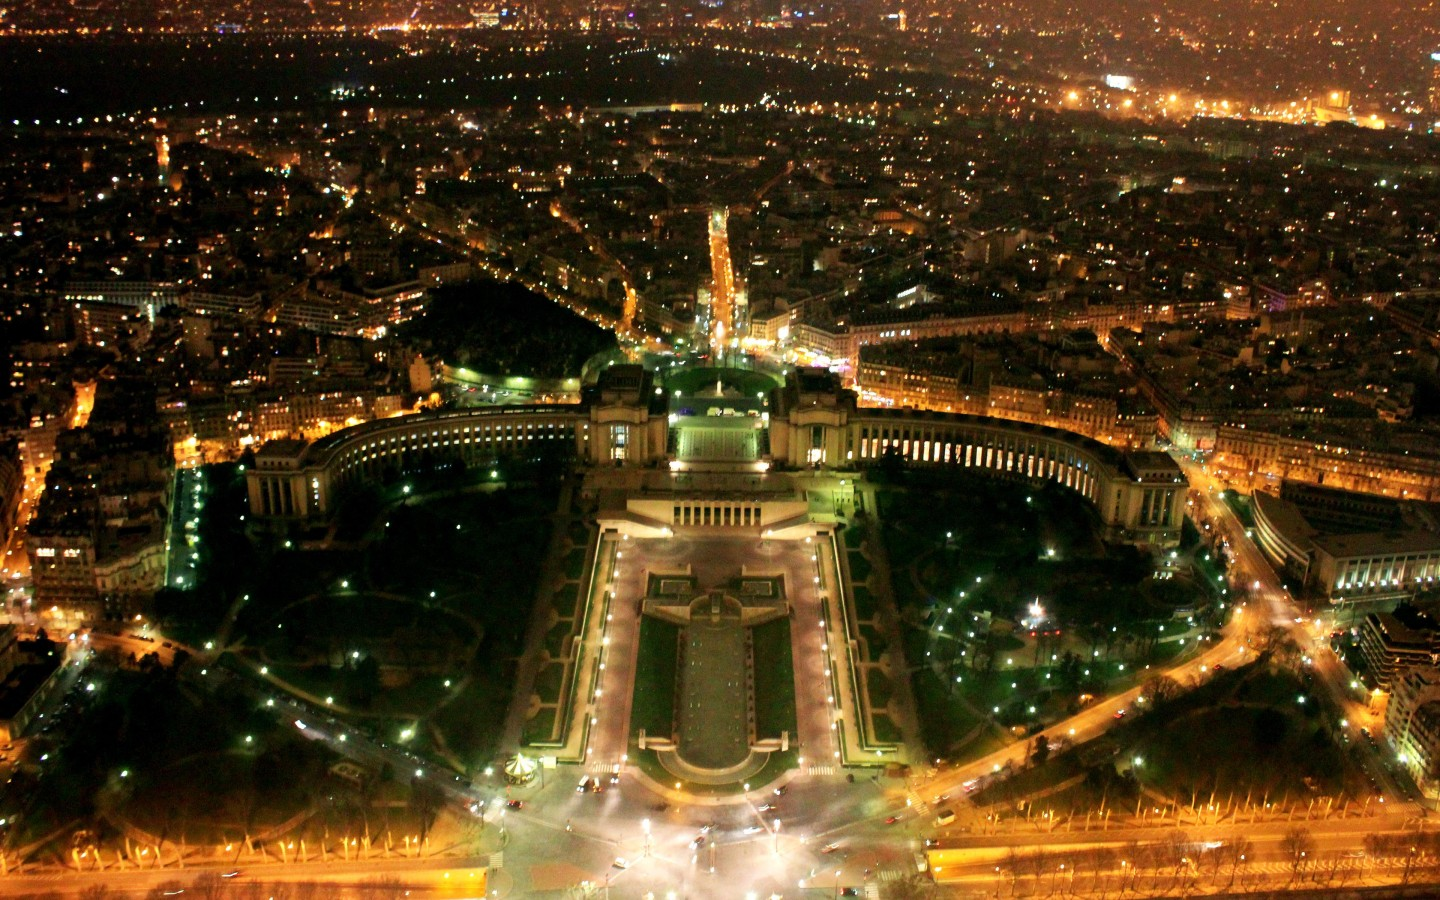 Paris night 1440x900